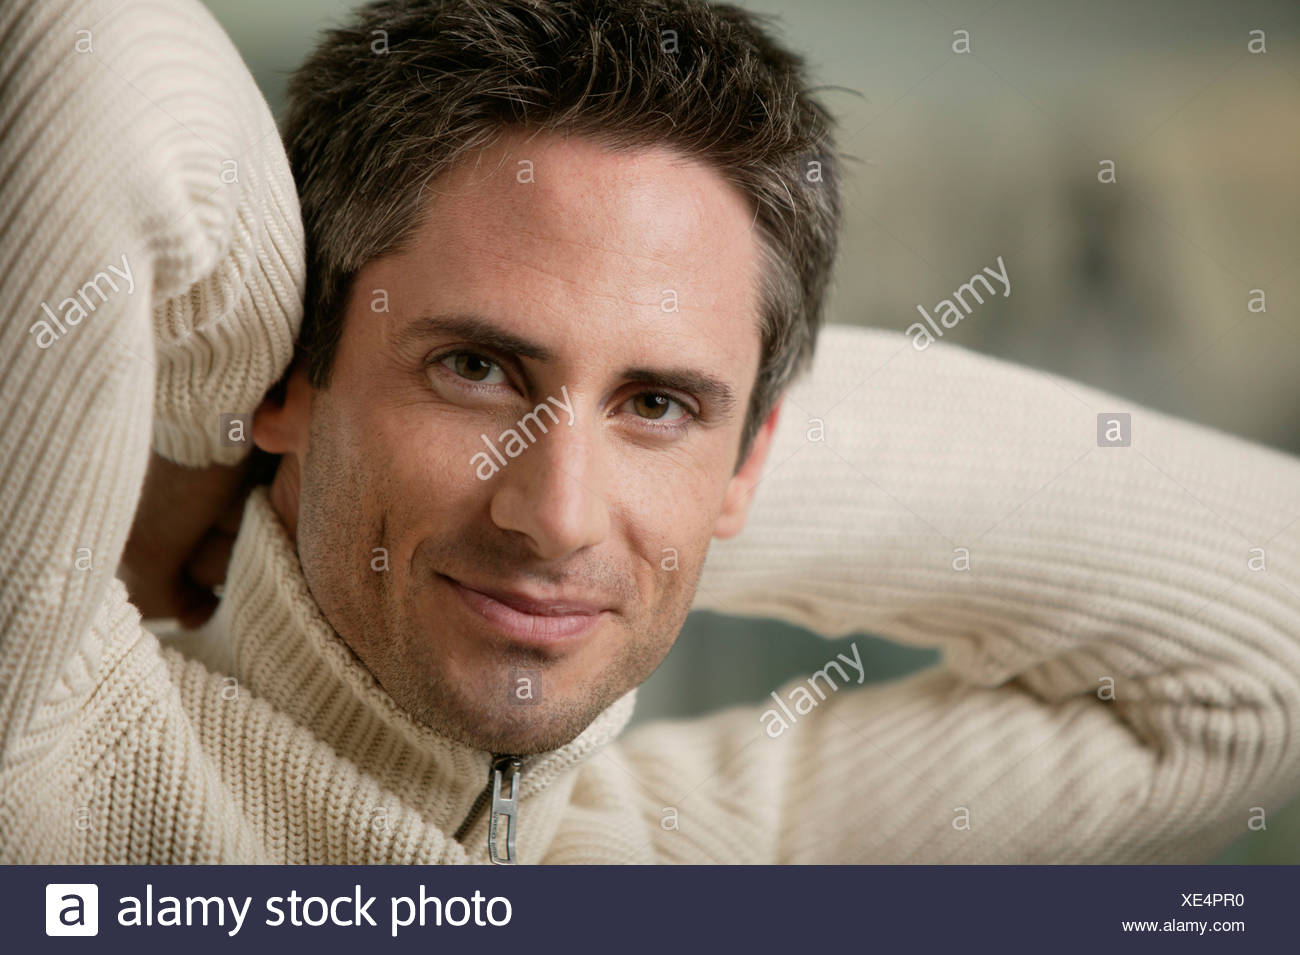 Man in light sweater looking relaxed - Stock Image